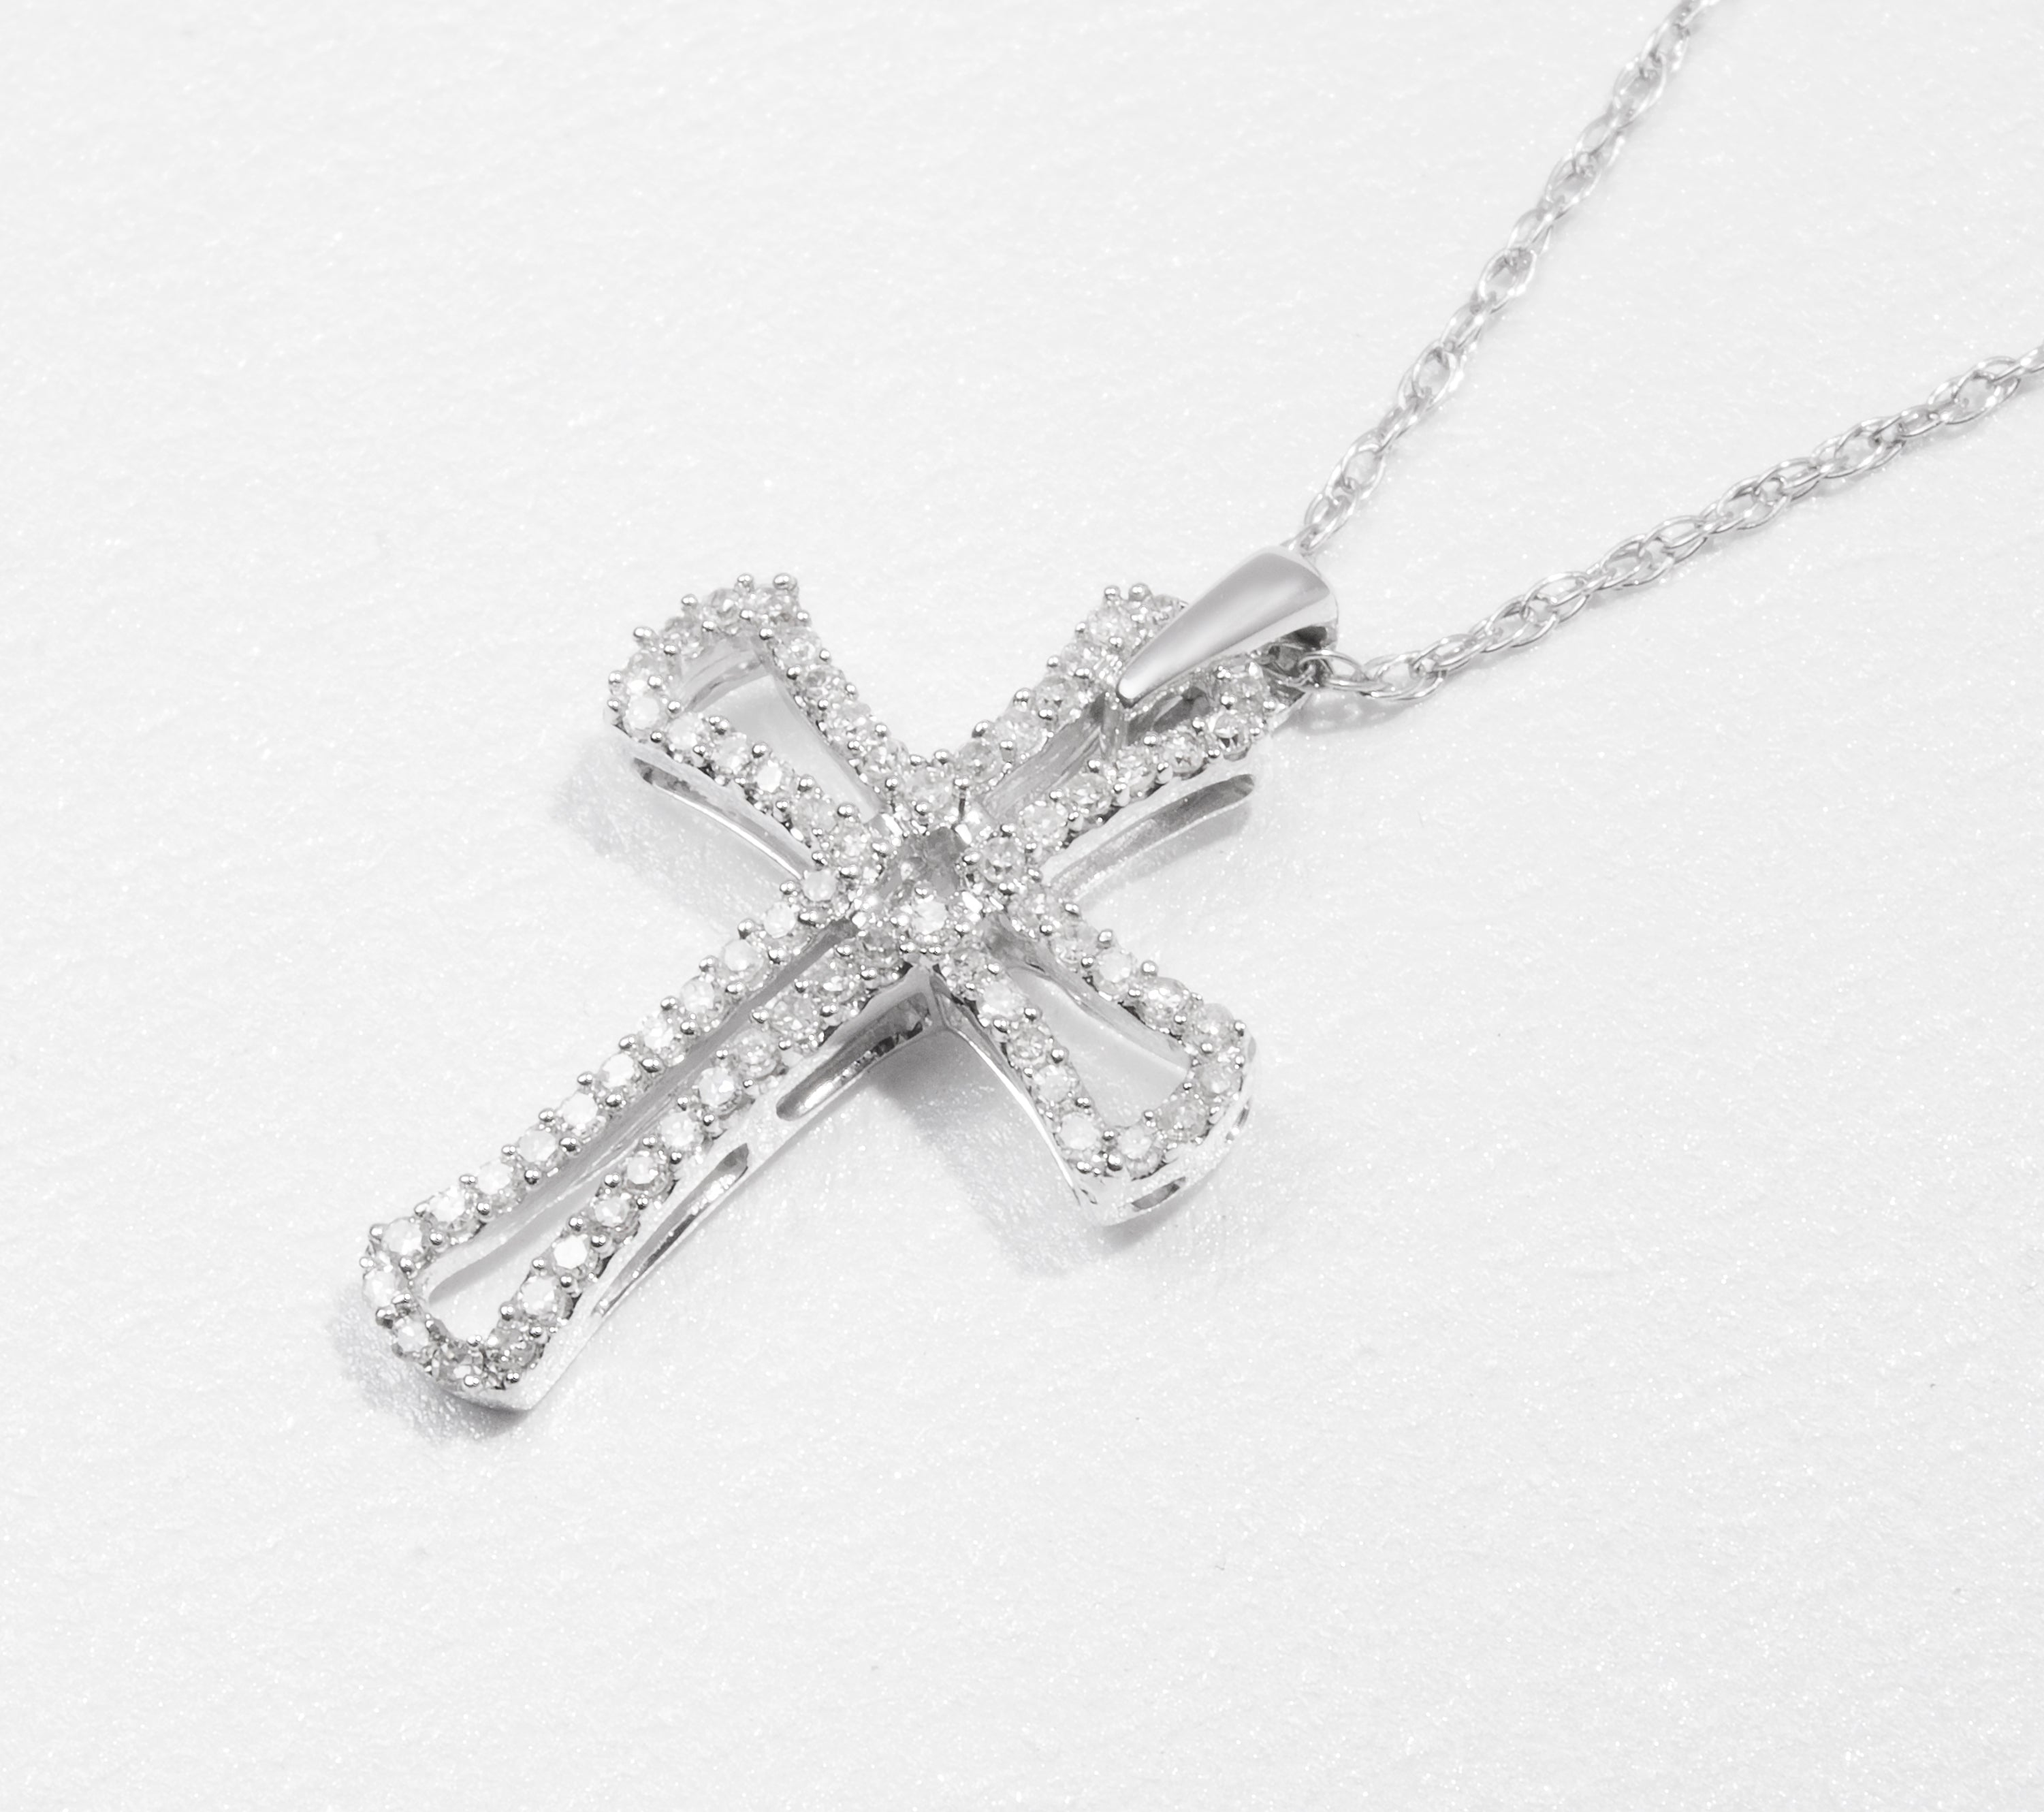 10k white gold diamond petite cross necklace includes 67 diamonds 10k white gold diamond petite cross necklace includes 67 diamonds mozeypictures Gallery